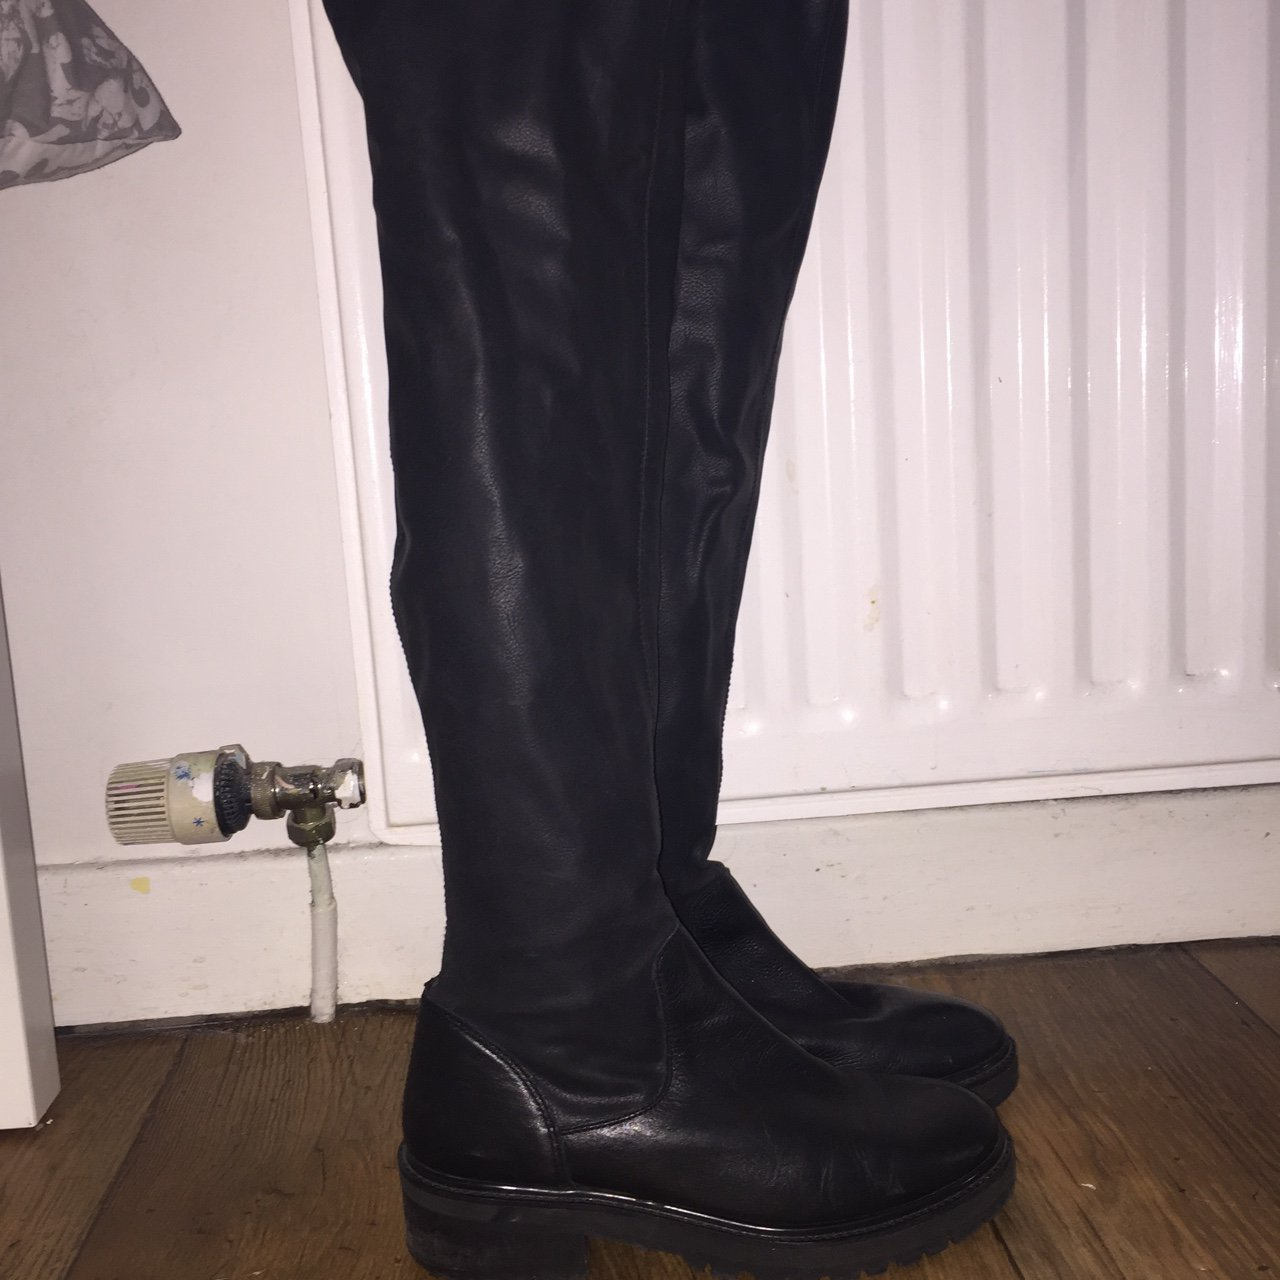 904843934104 Topshop over the knee flat black leather boots Size 6 Worn - Depop